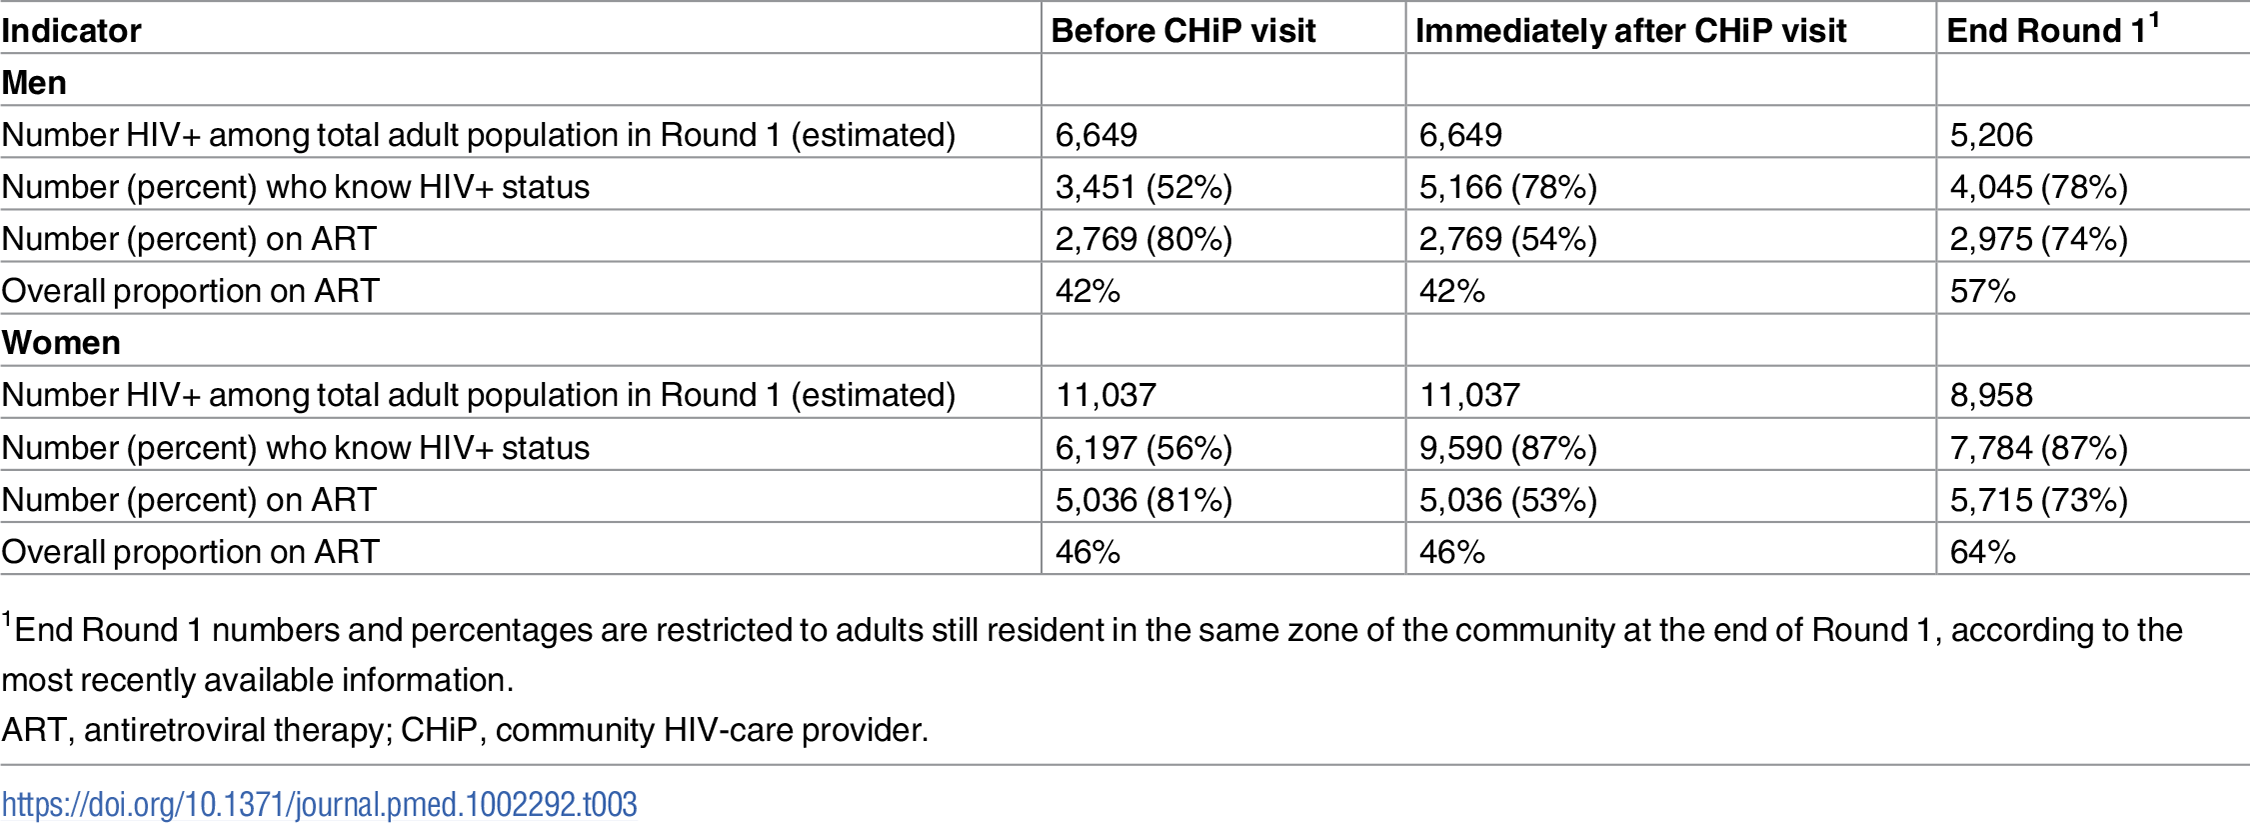 Estimated proportions of HIV+ individuals who knew their status and who were on ART before the CHiP visit, immediately after the CHiP visit, and at the end of Round 1, in total adult population.